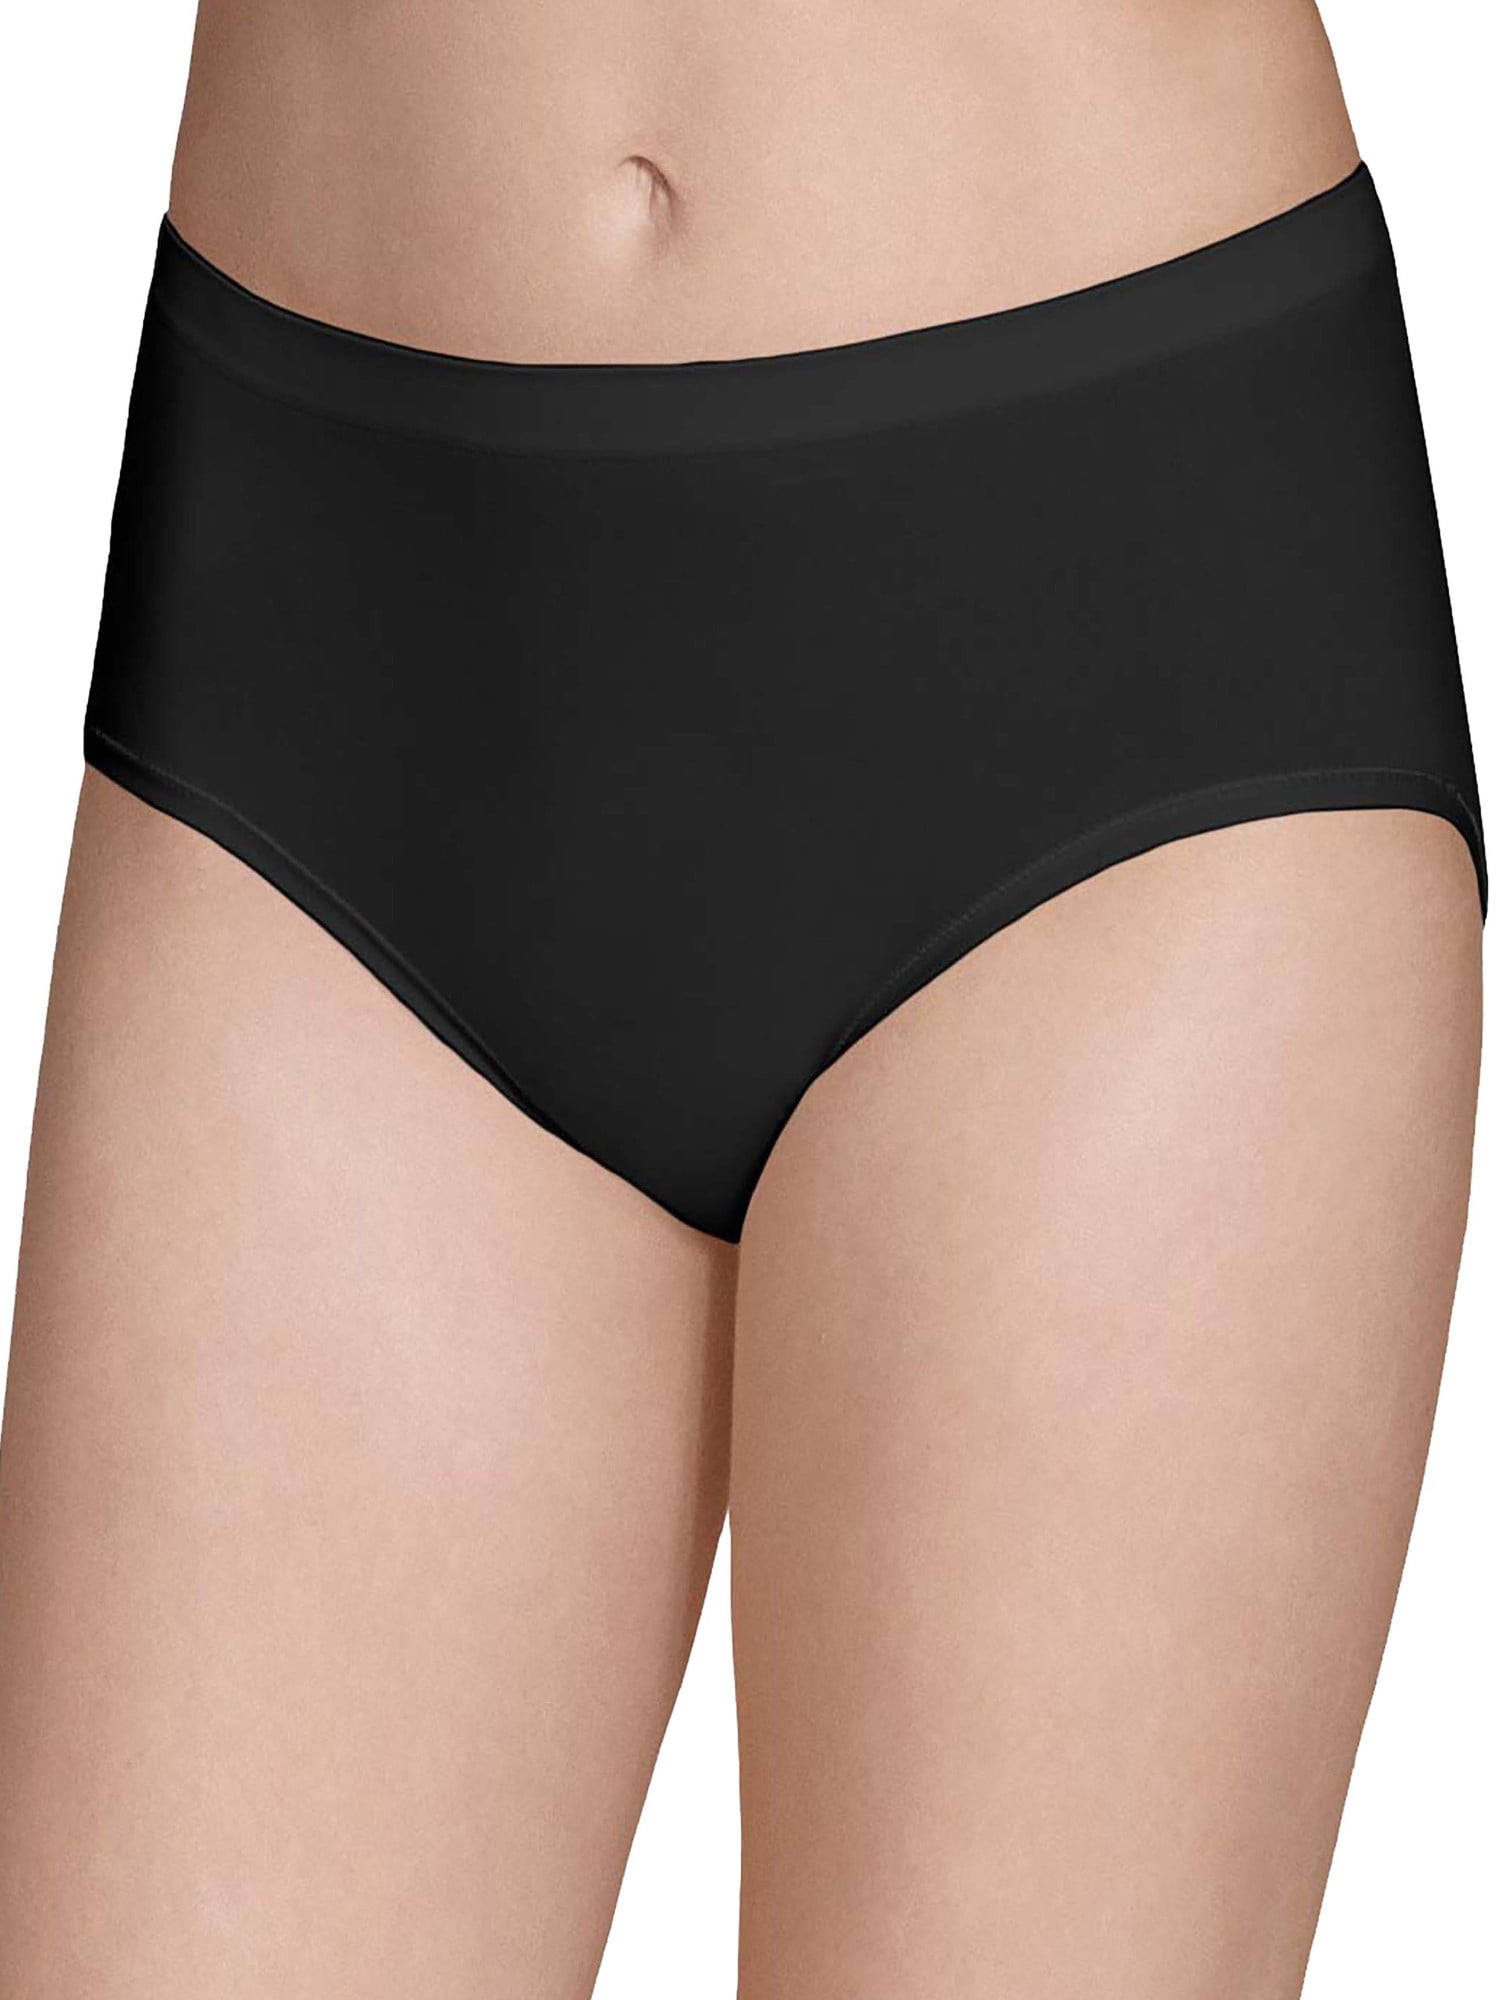 844b51bf70b4 Fruit of the Loom - Women's Seamless Low-Rise Brief Panties - 6 Pack -  Walmart.com